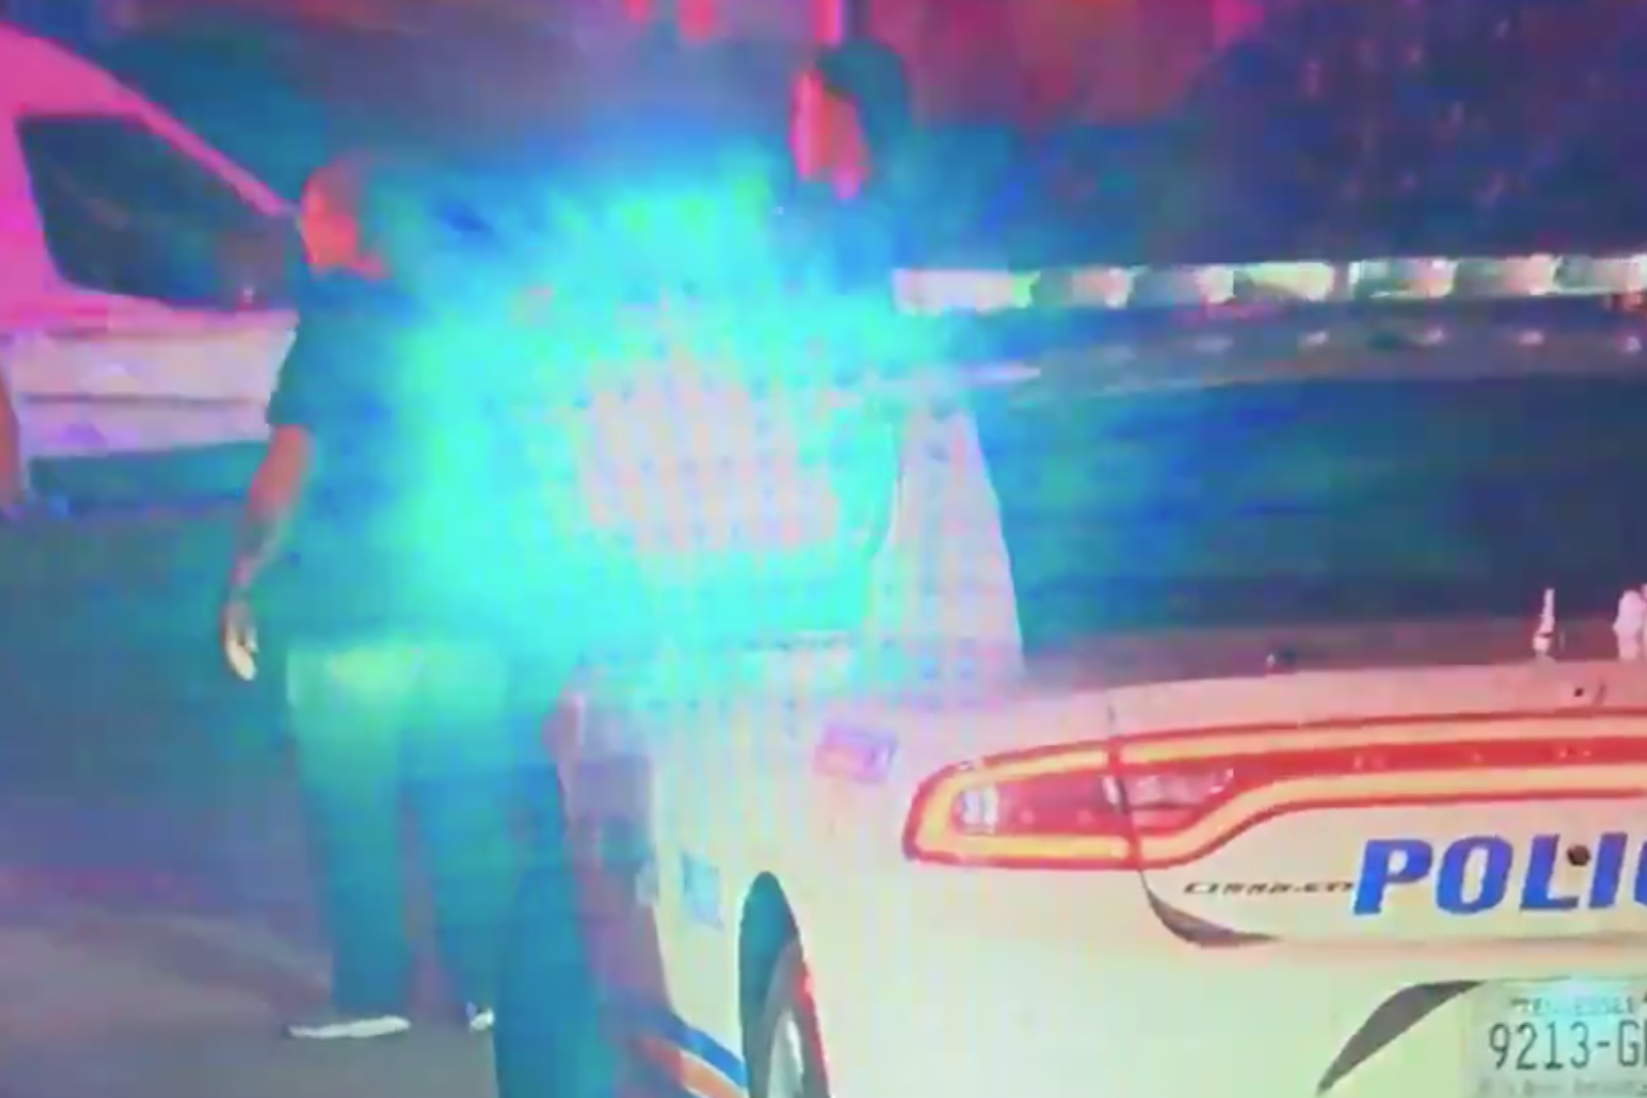 police shooting - latest news, breaking stories and comment - The